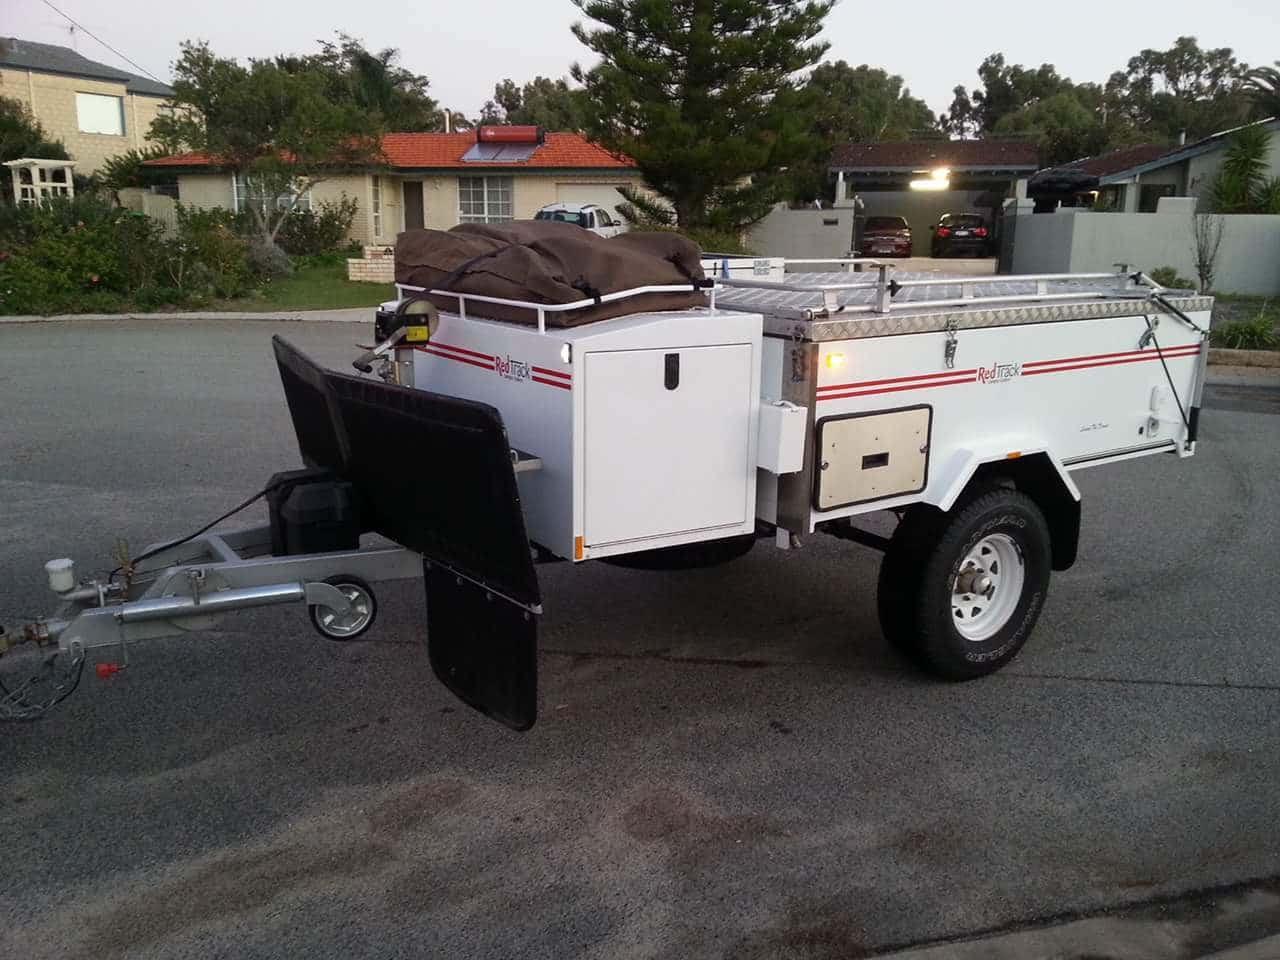 Beautiful Ideas About Off Road Camper On Pinterest  Off Road Camper Trailer